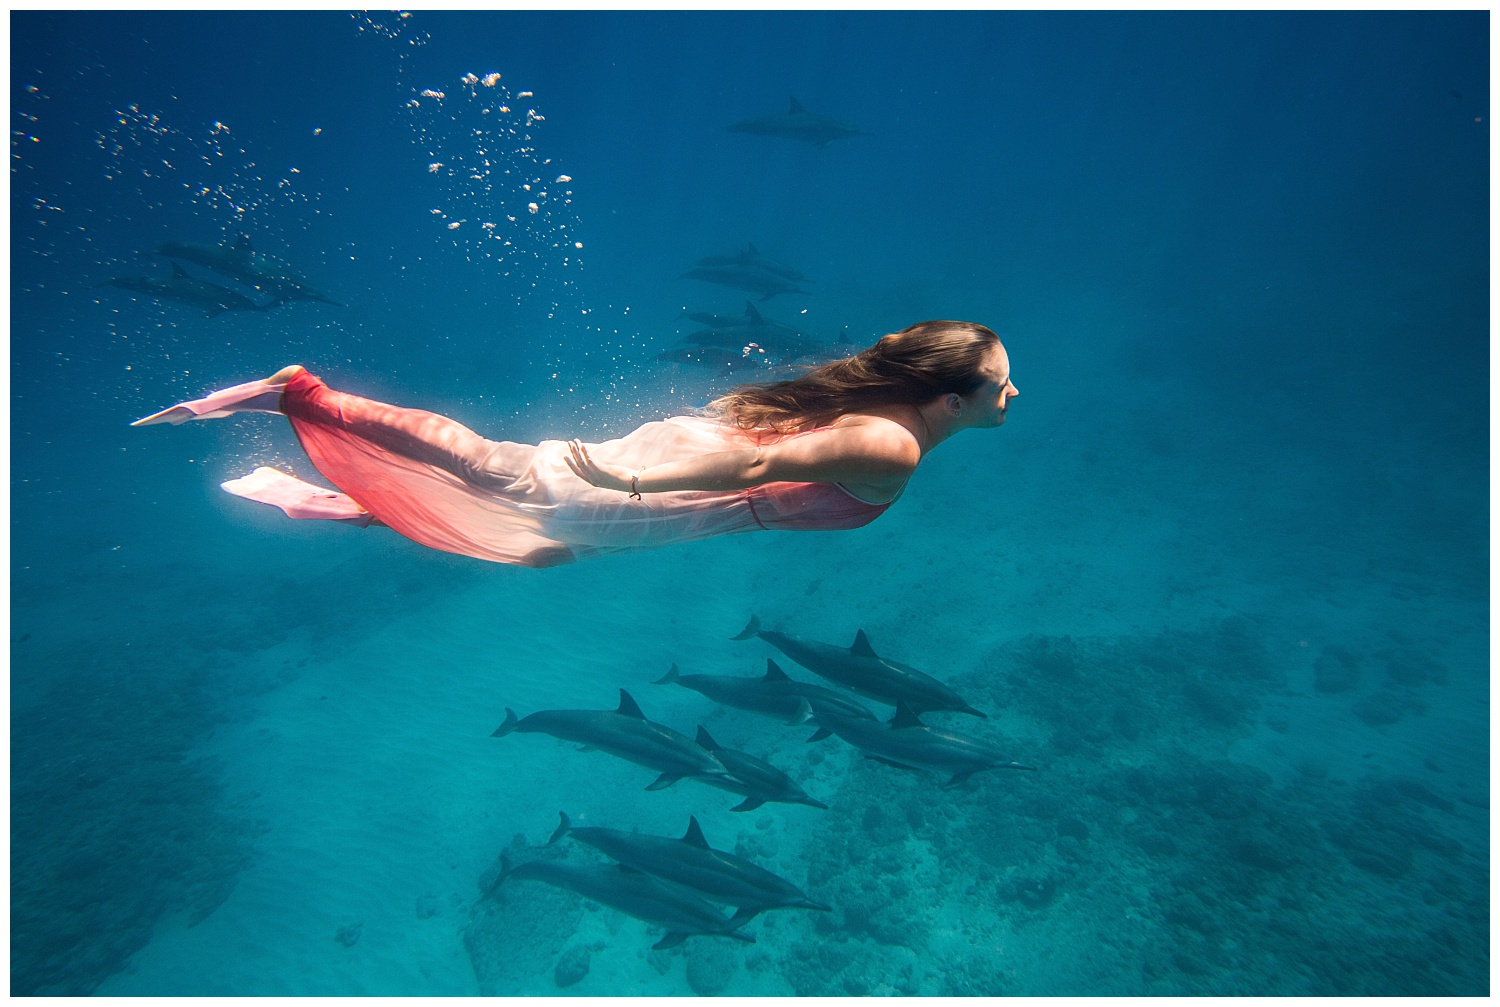 Underwater Portrait with Dolphins